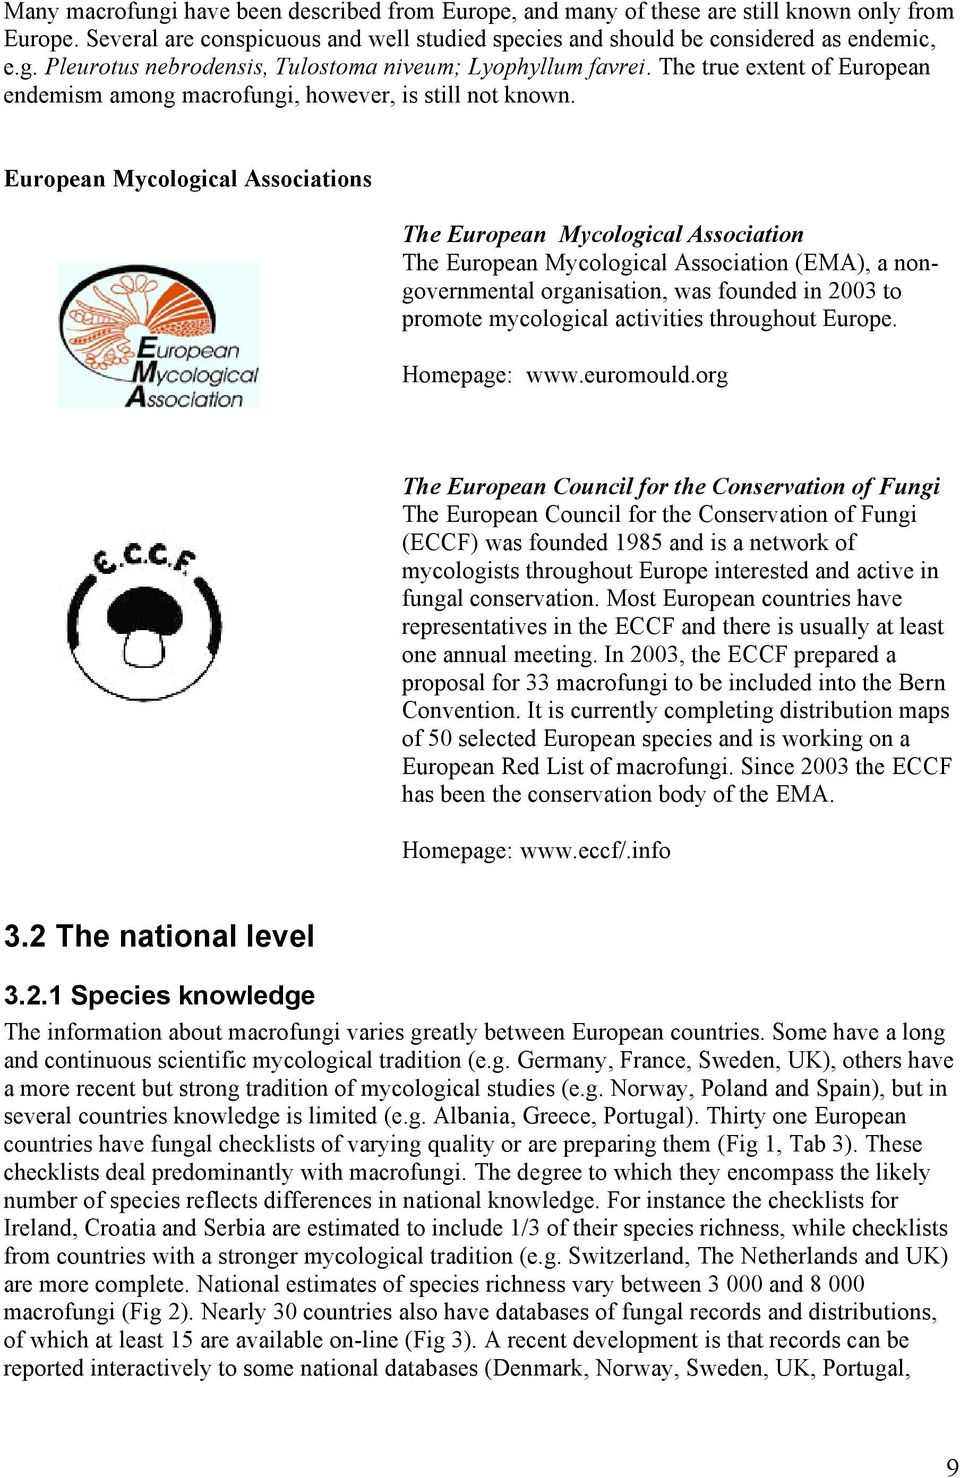 European Mycological Associations The European Mycological Association The European Mycological Association (EMA), a nongovernmental organisation, was founded in 2003 to promote mycological